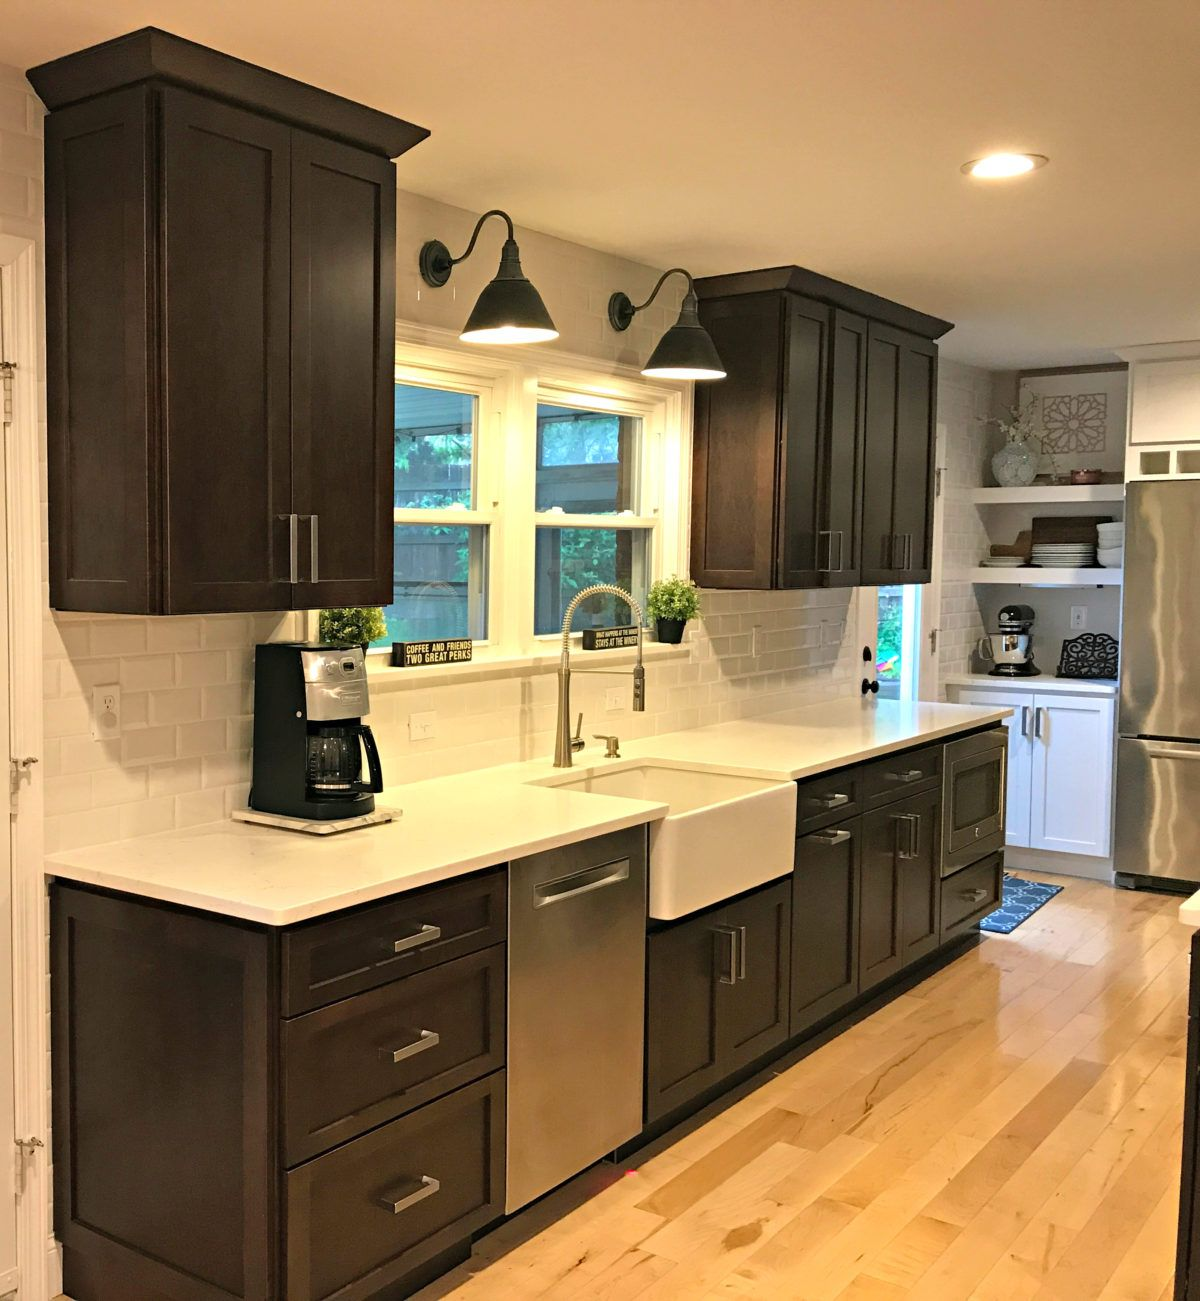 Galley kitchen renovation galley kitchens remodeling ideas and galley kitchen renovation solutioingenieria Image collections